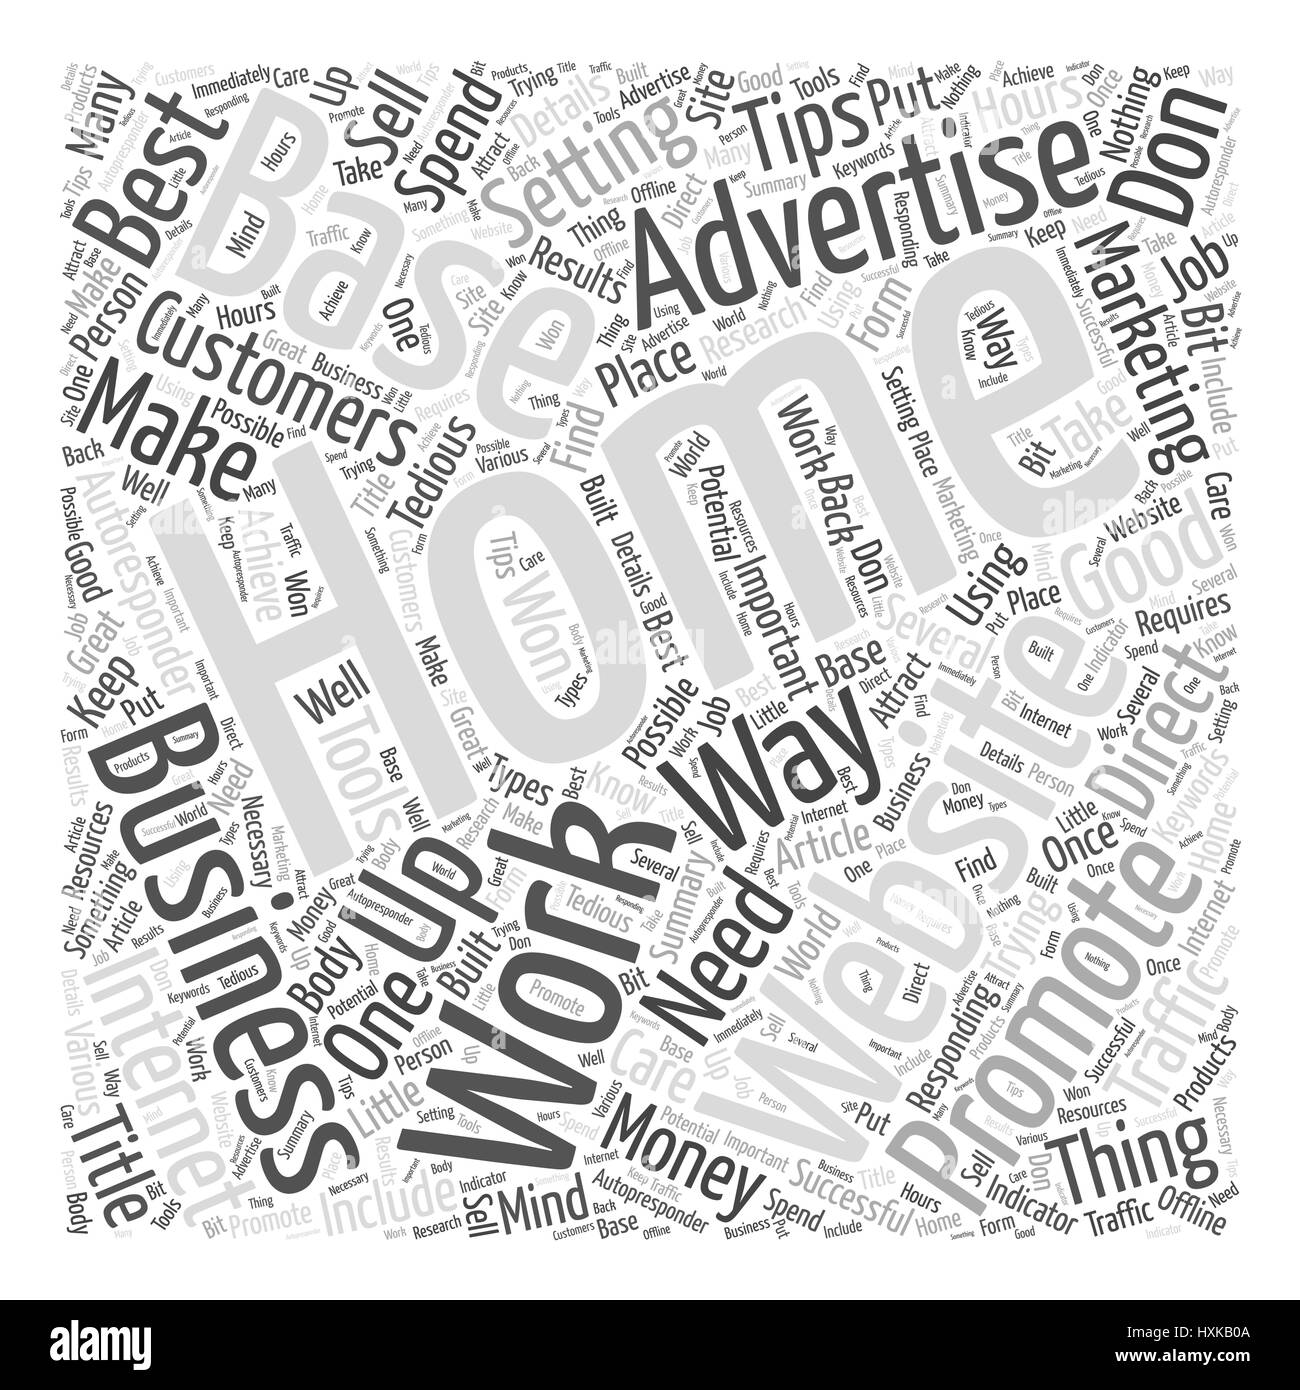 Home Base Business Text Background Stock Photos & Home Base Business ...